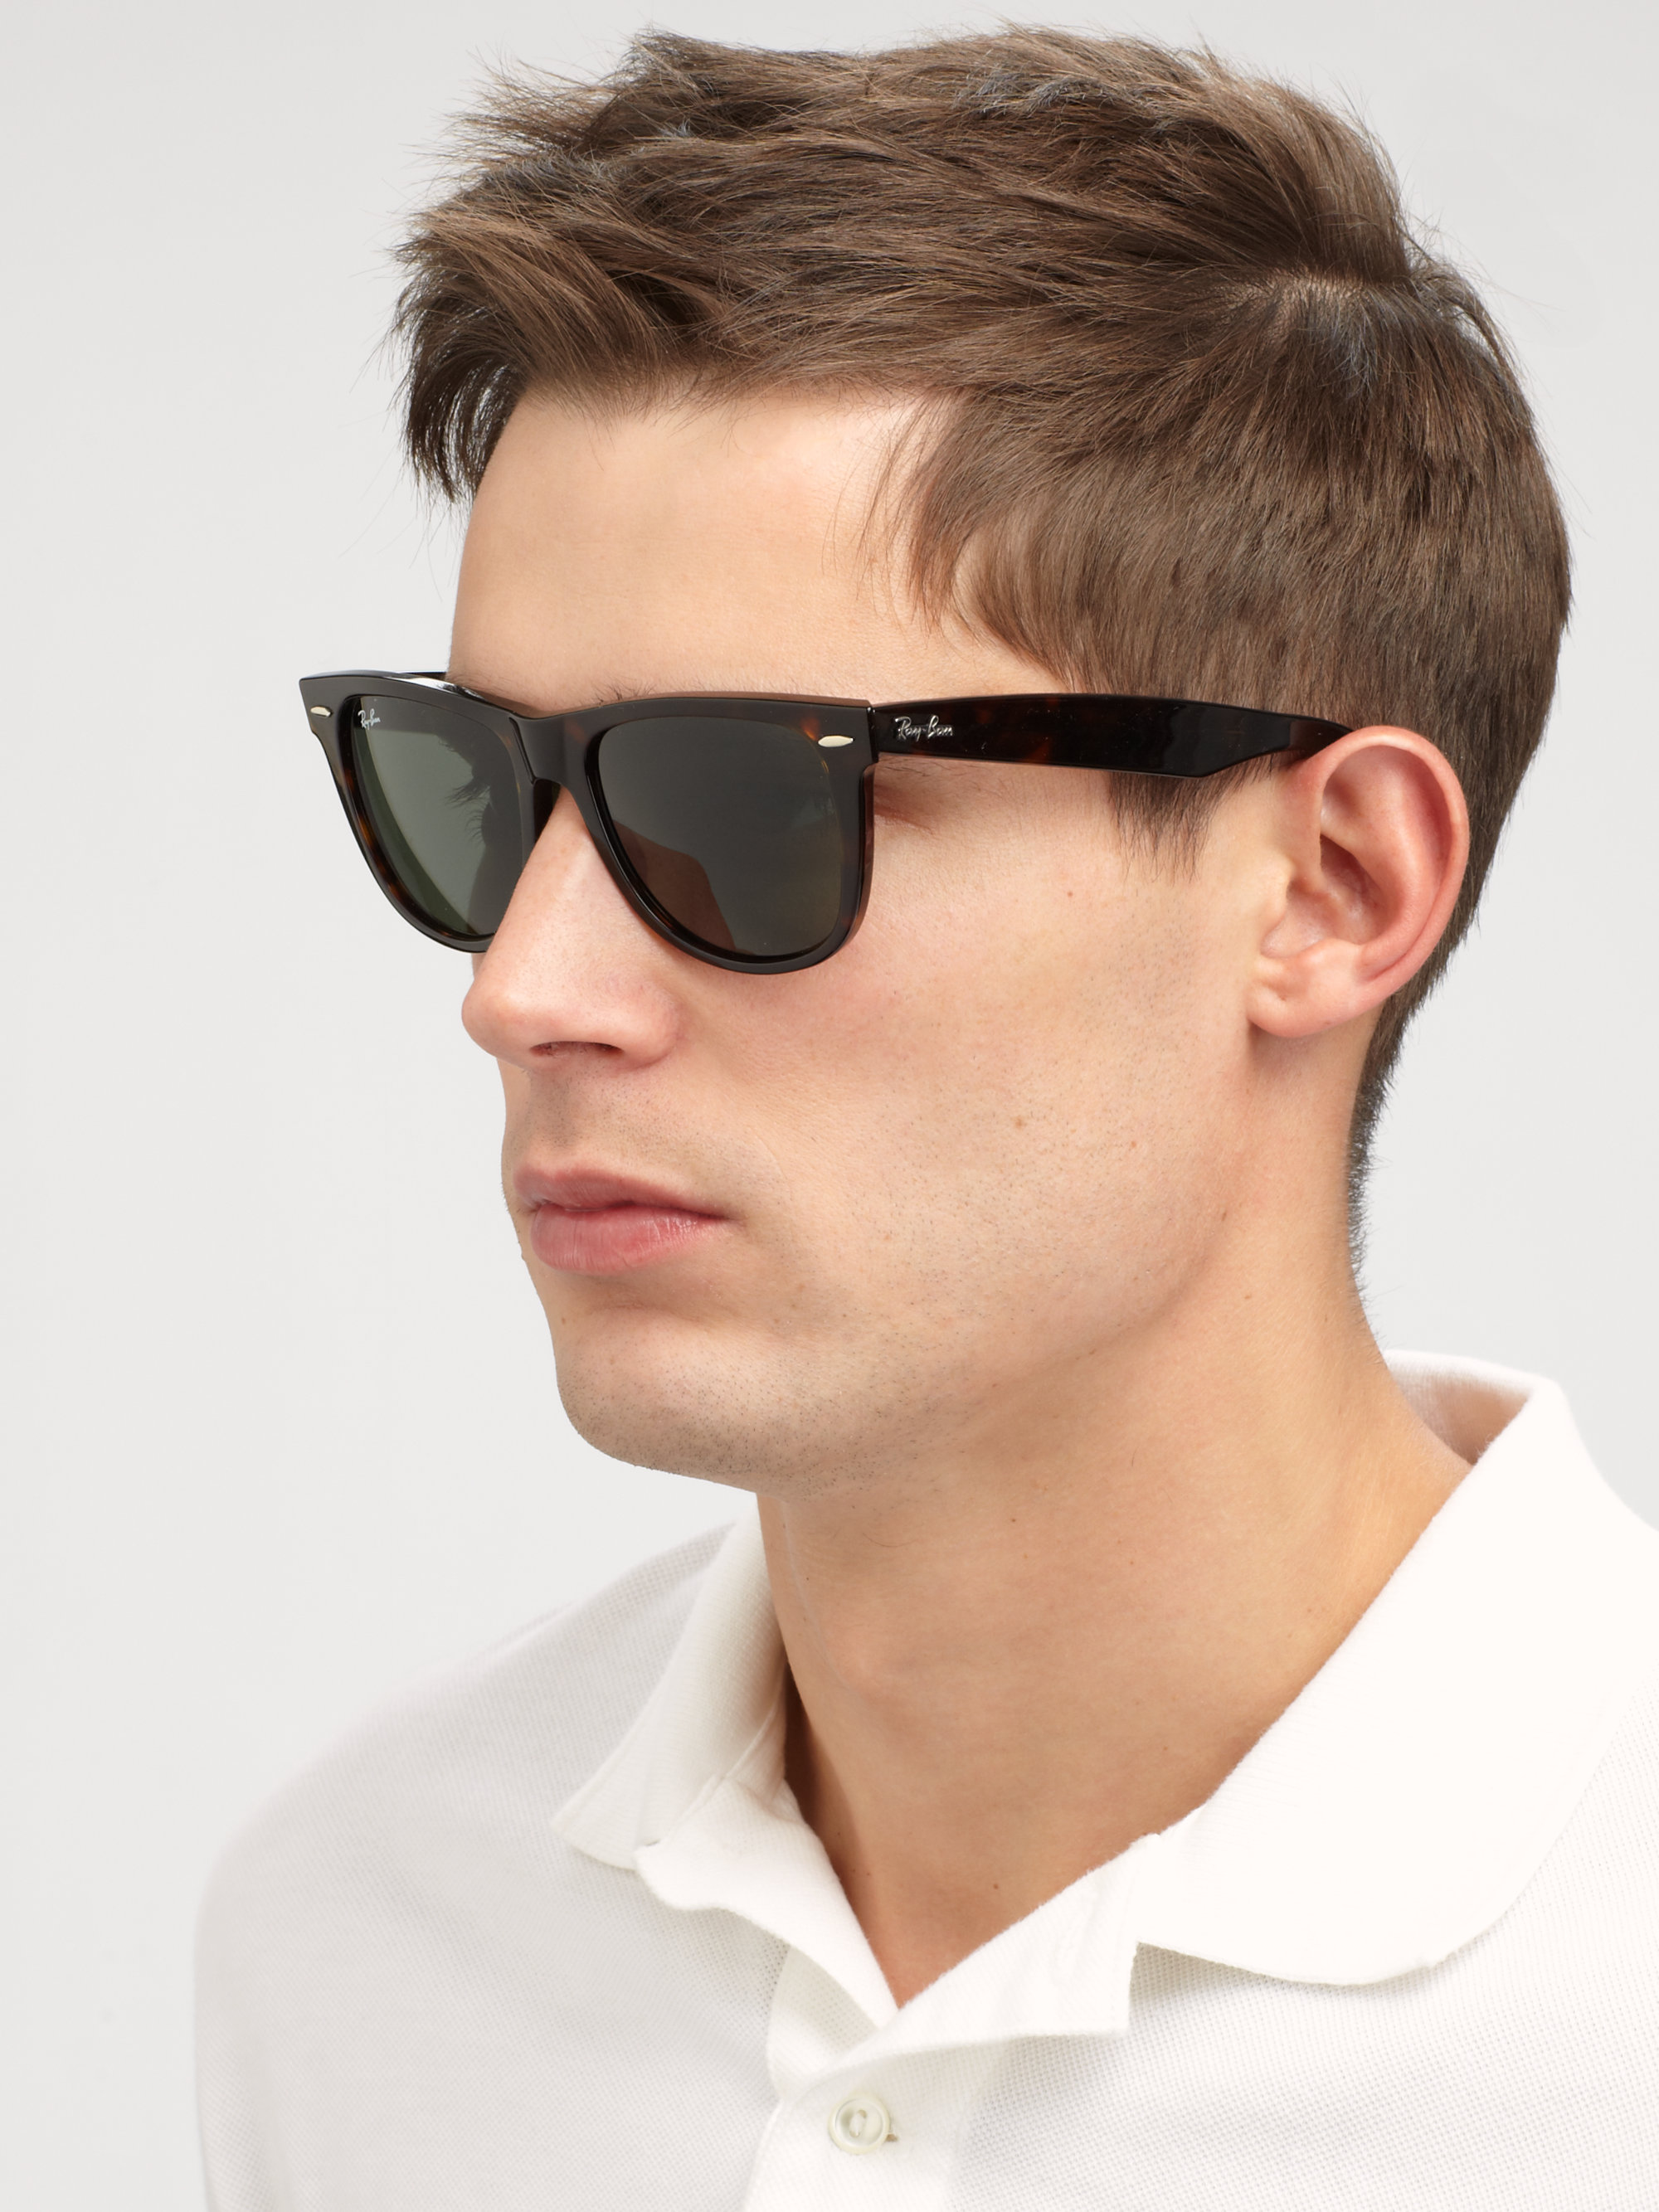 ray ban clubmaster classic tortoise  Ray-ban Classic Wayfarer Sunglasses in Black